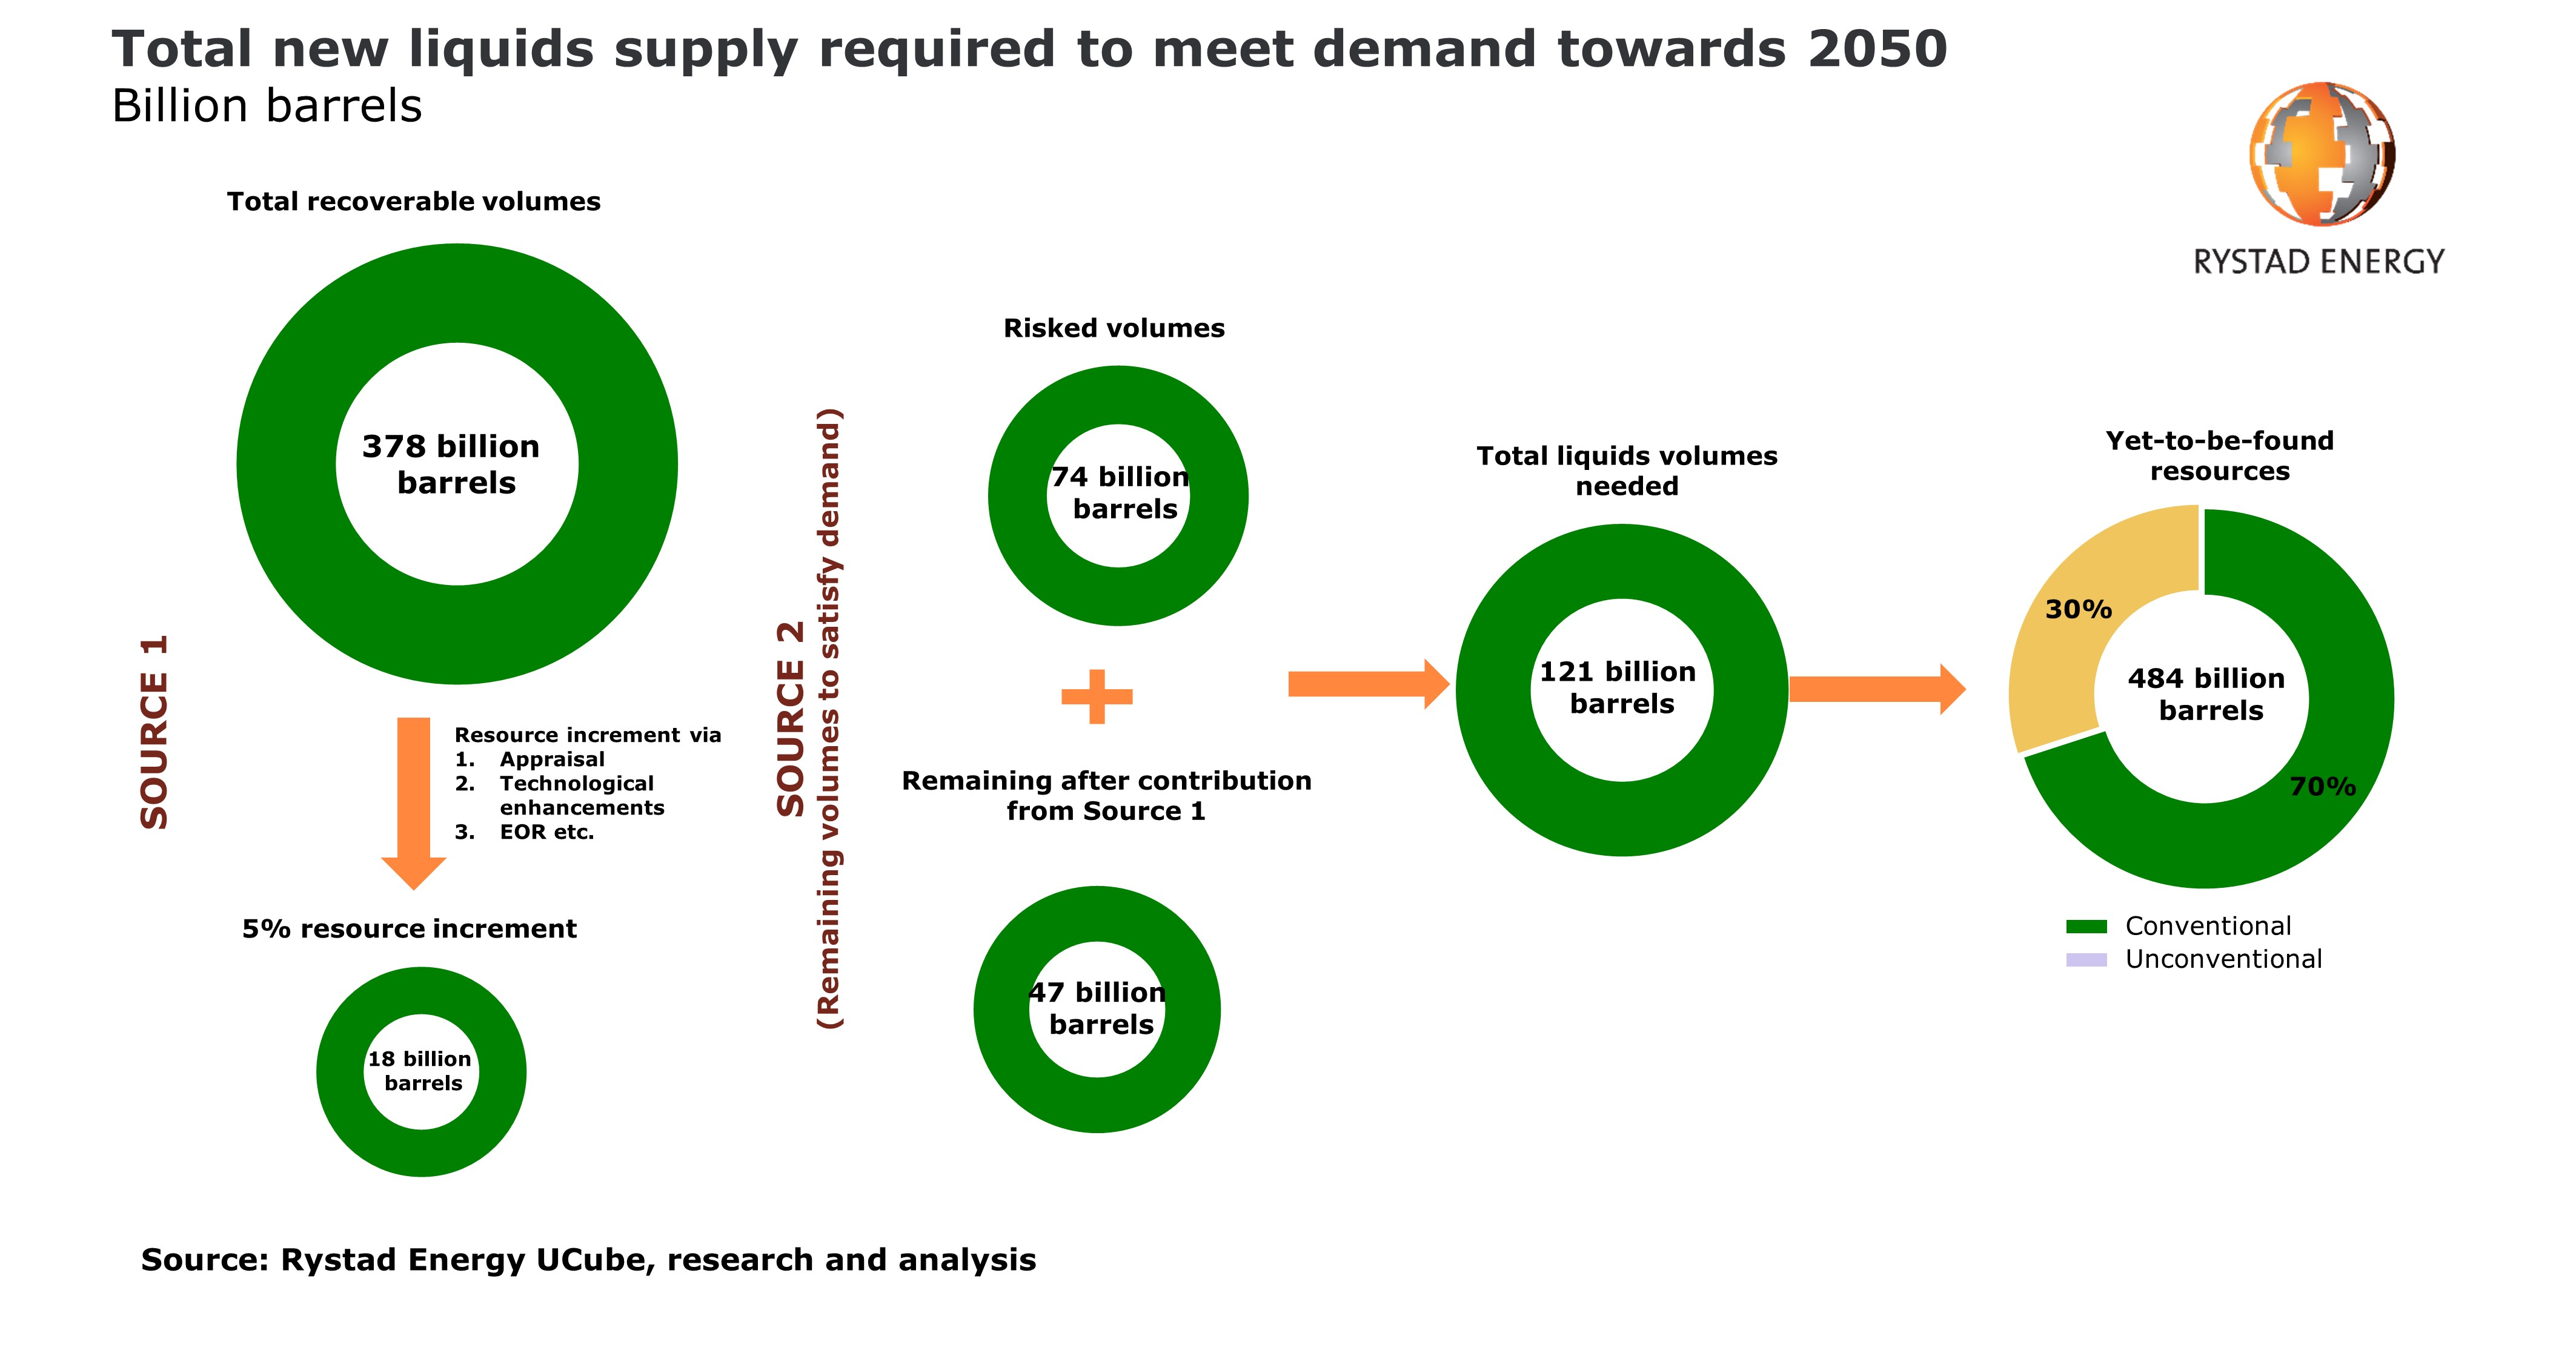 rystad predicts oil and gas supply crisis by 2050